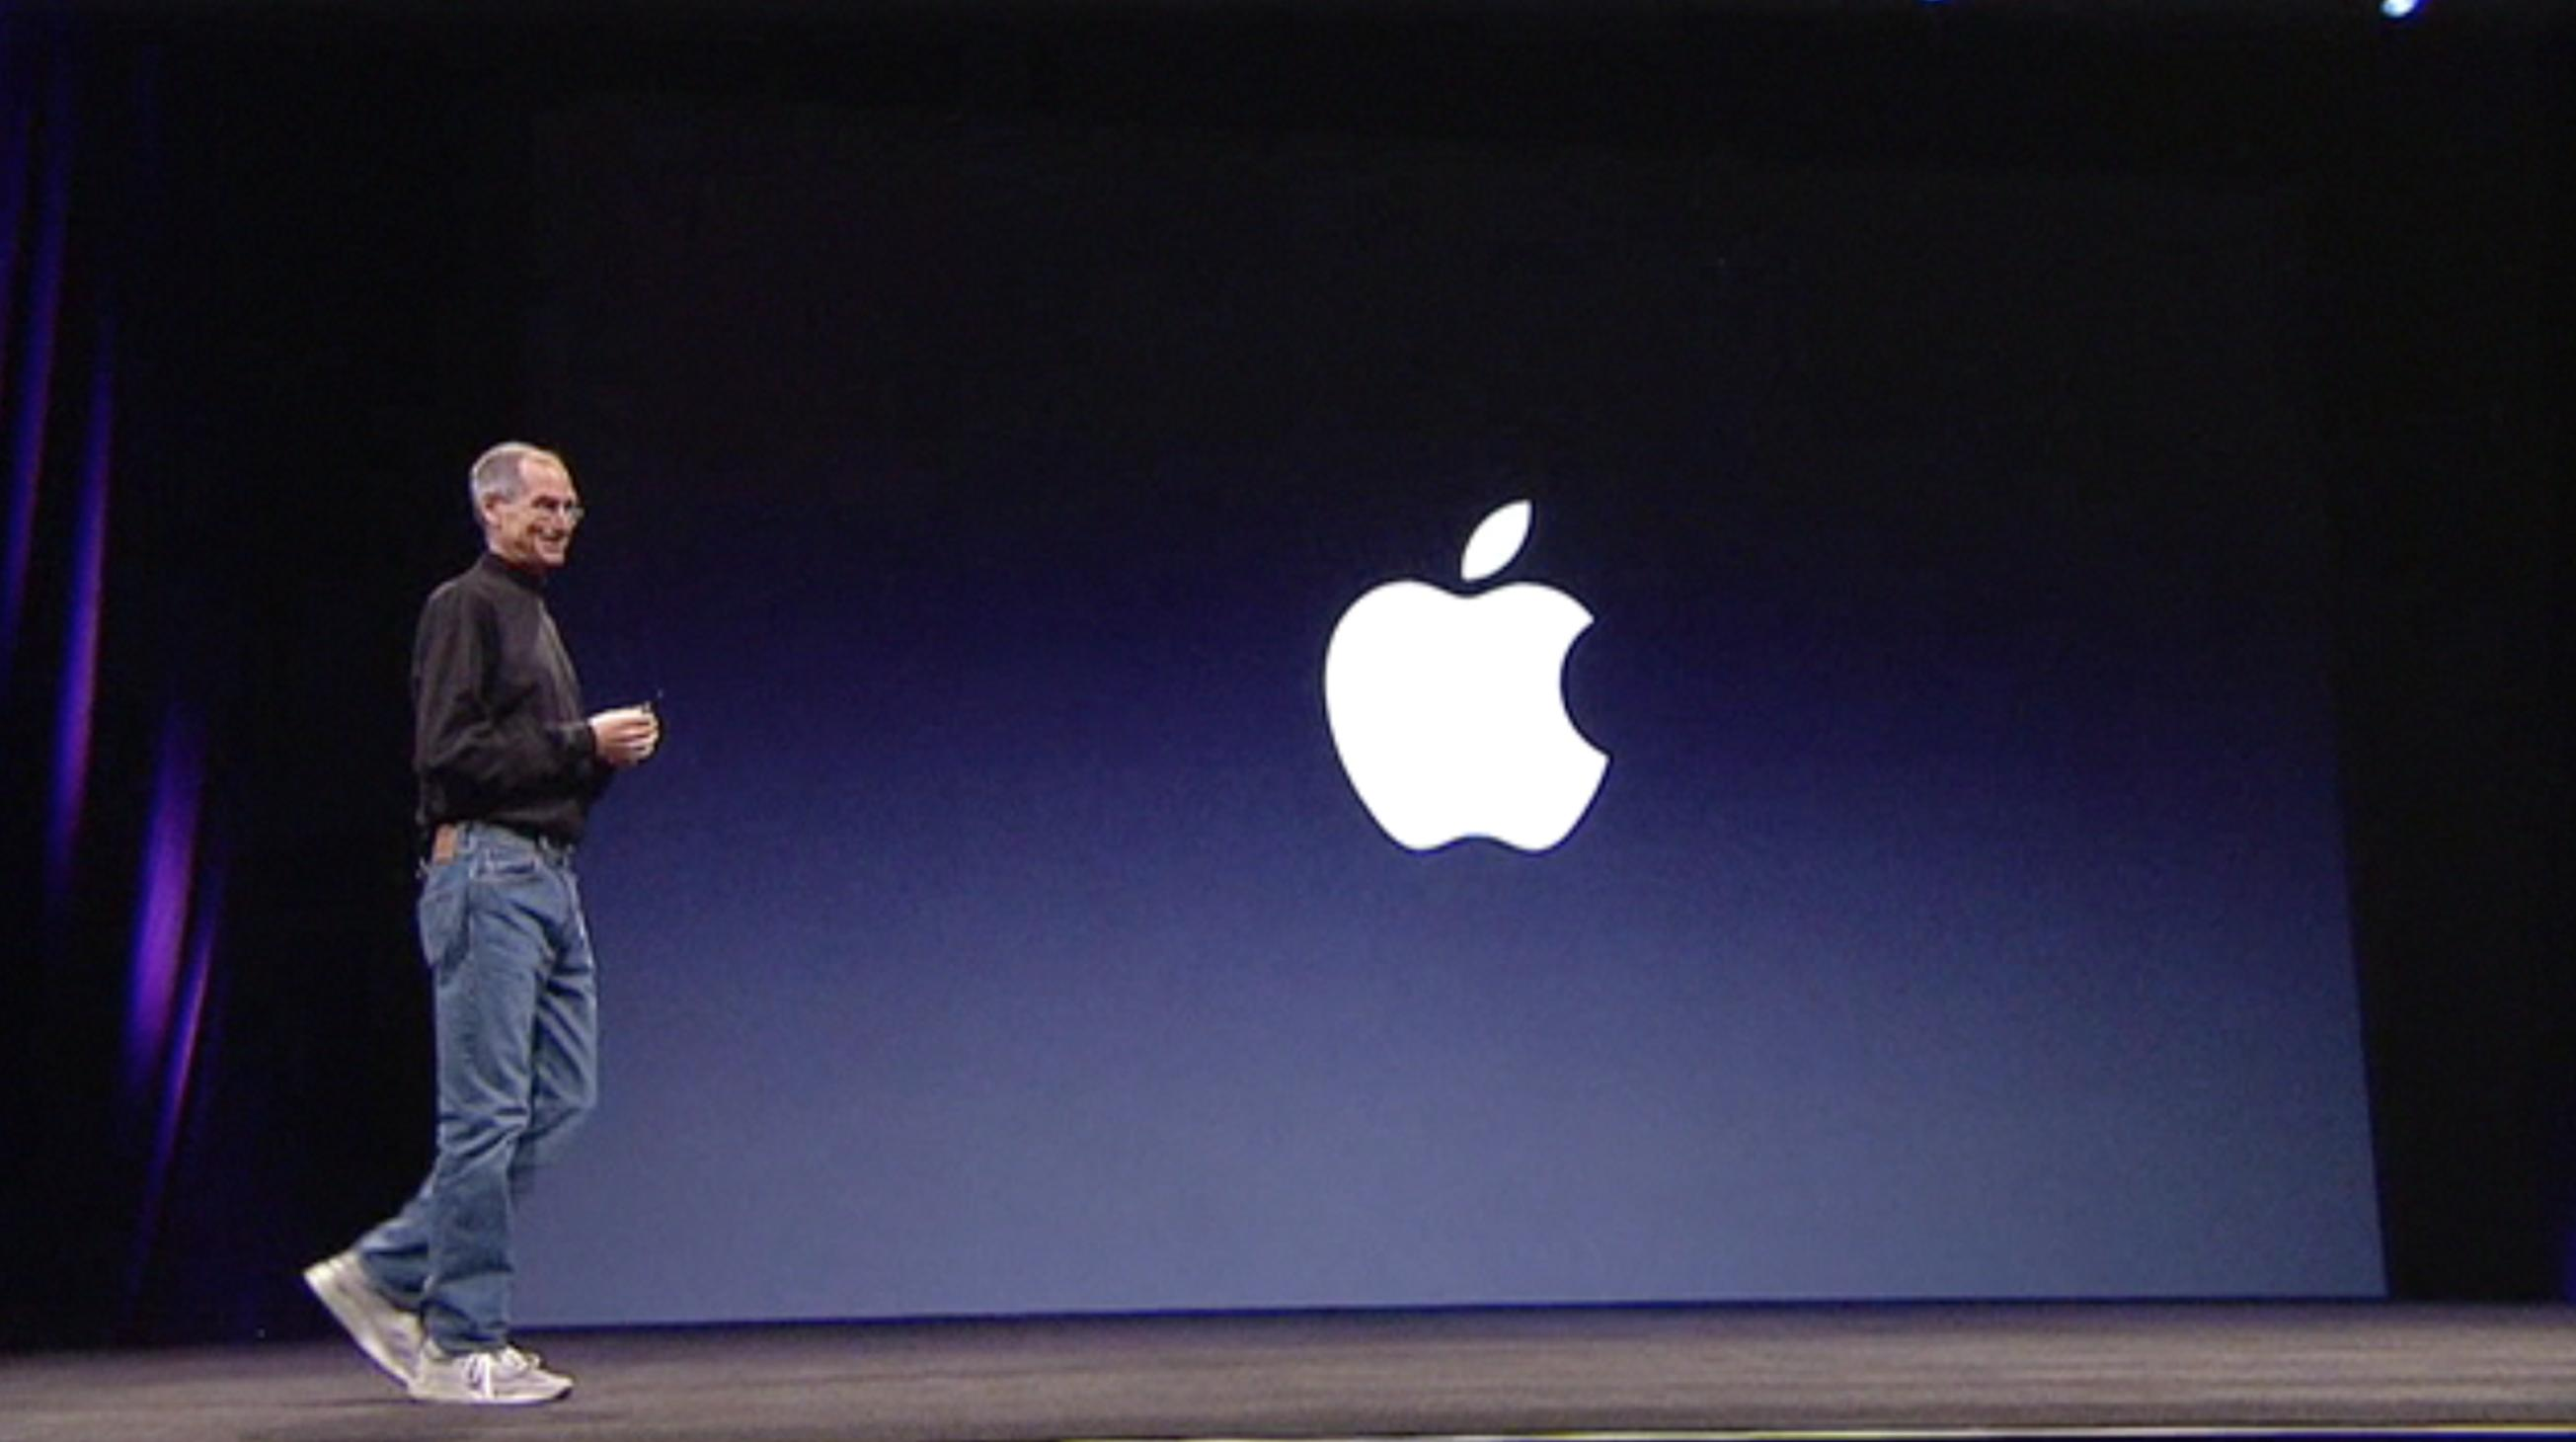 Steve Jobs's consistent styling with blue jeans and black tee create a good recognition